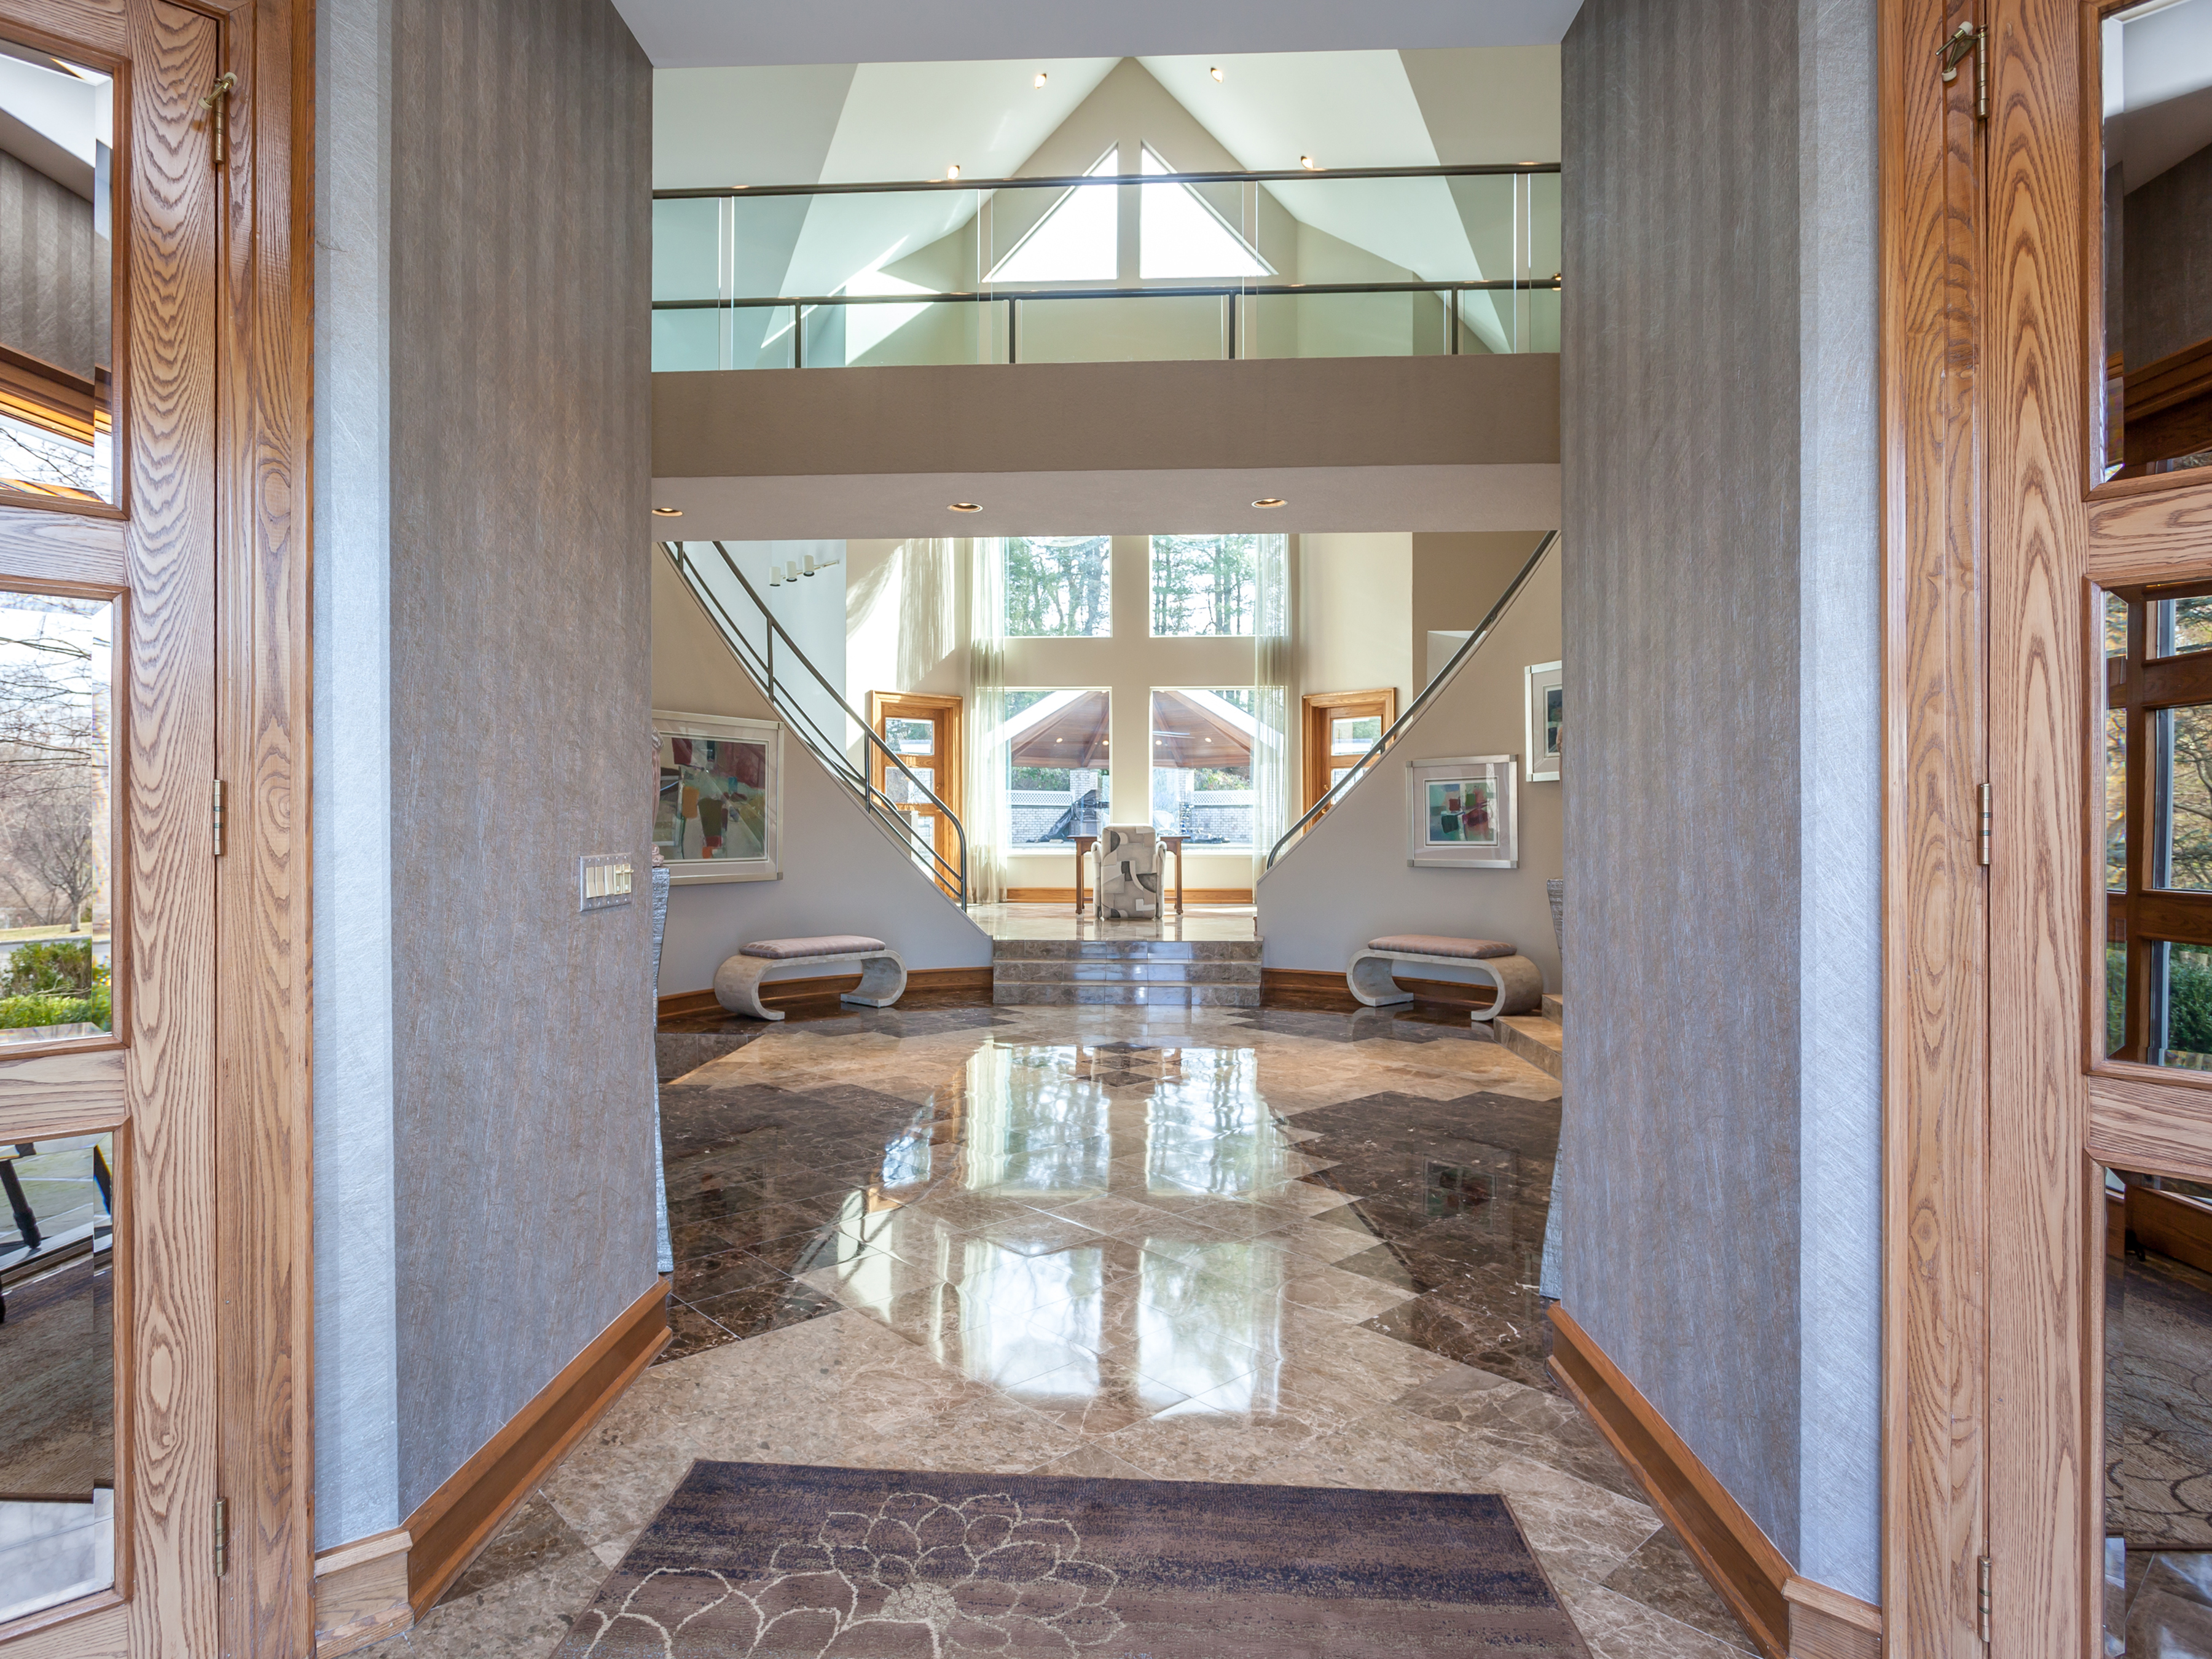 Single Family Home for Sale at Sophisticated Custom Contemporary 10 Weldon Woods Road New Fairfield, Connecticut, 06812 United States